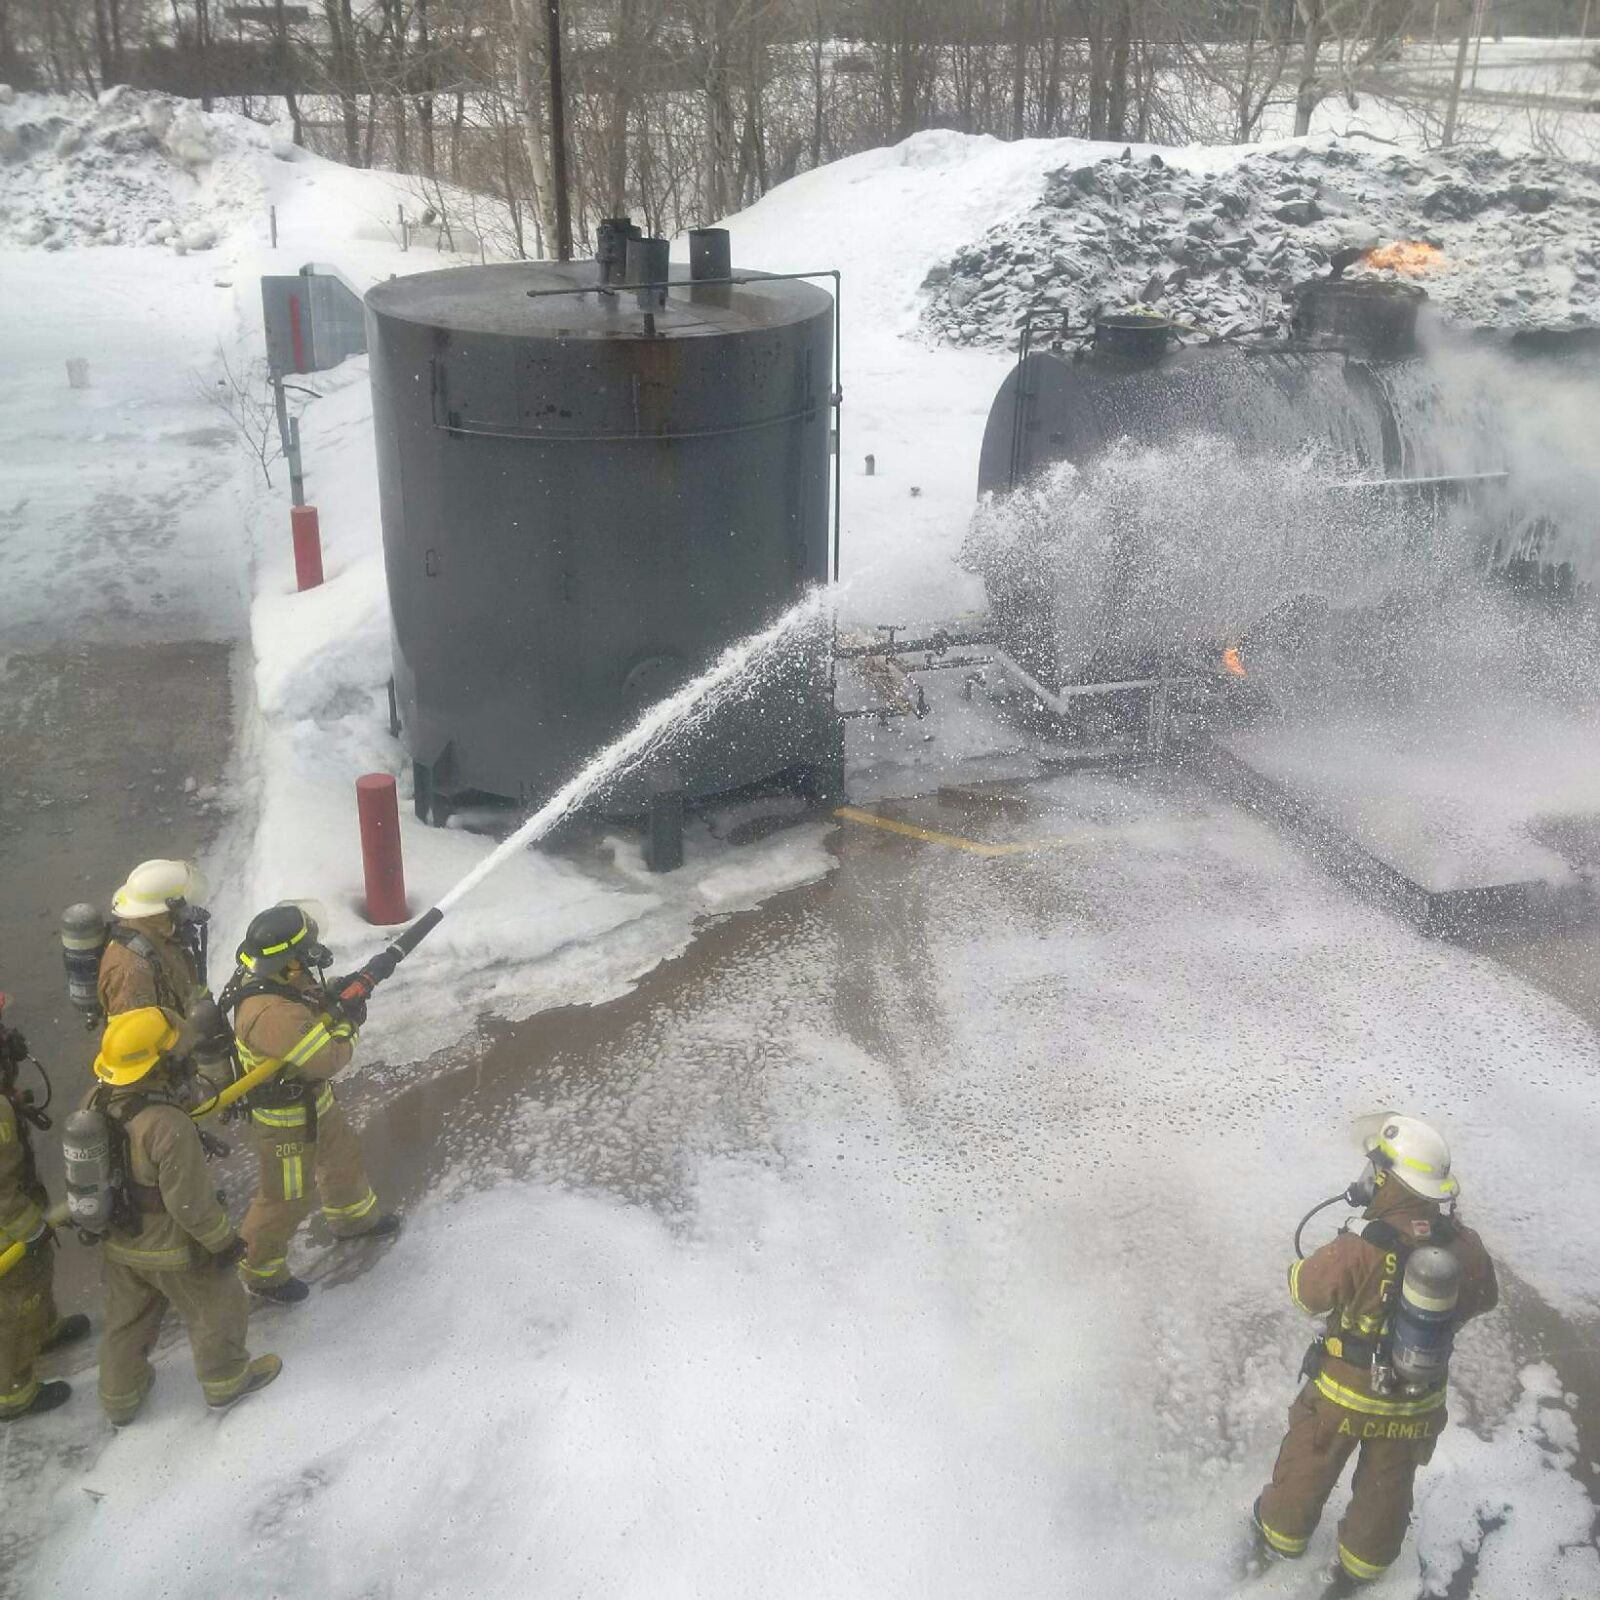 Firefighters use foam to extinguish crude oil fire.